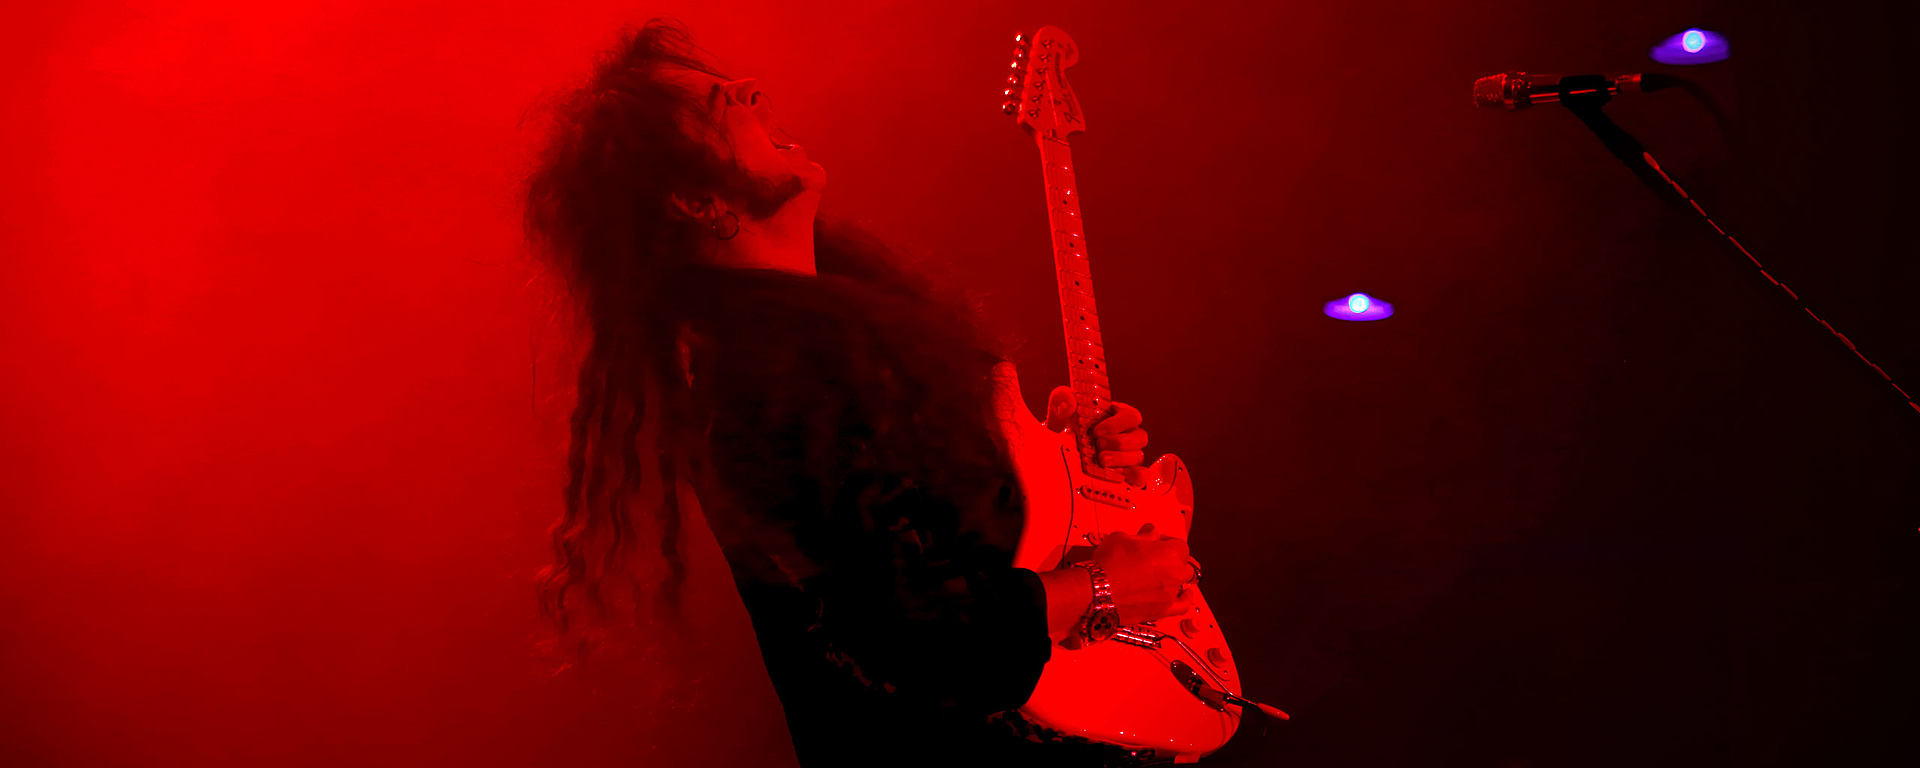 Yngwie Malmsteen uses the LEWITT MTP 550 DM vocal mic live